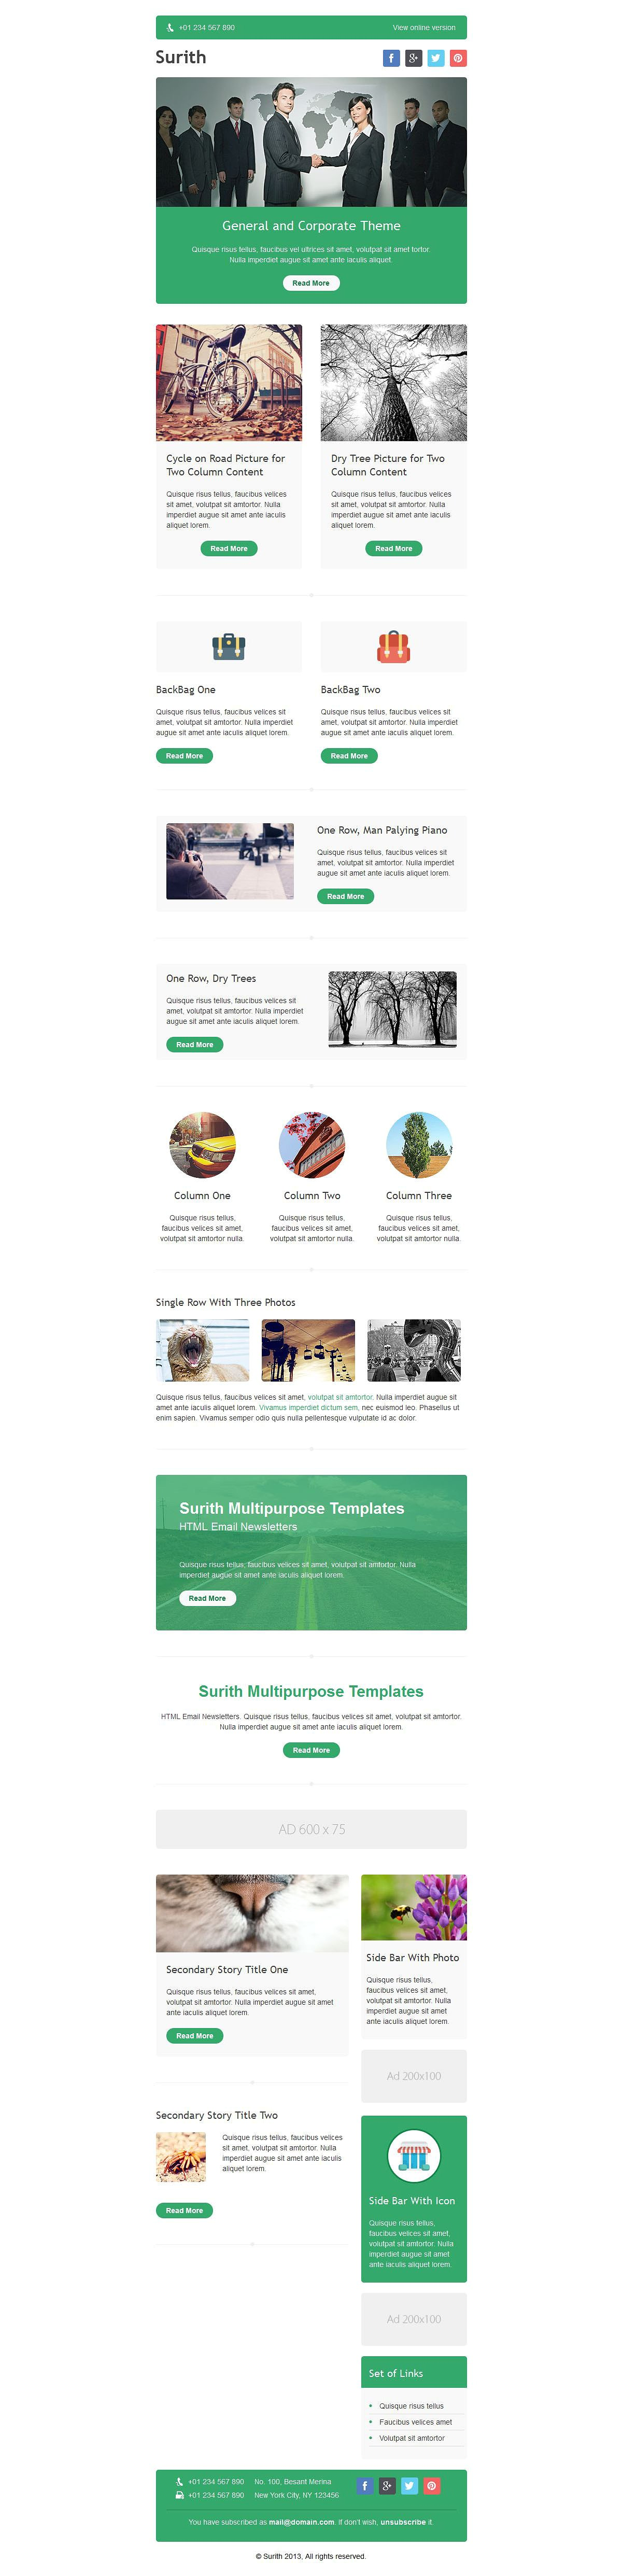 Surith Email Newsletter Templates Newsletter Templates Email - Two column email template